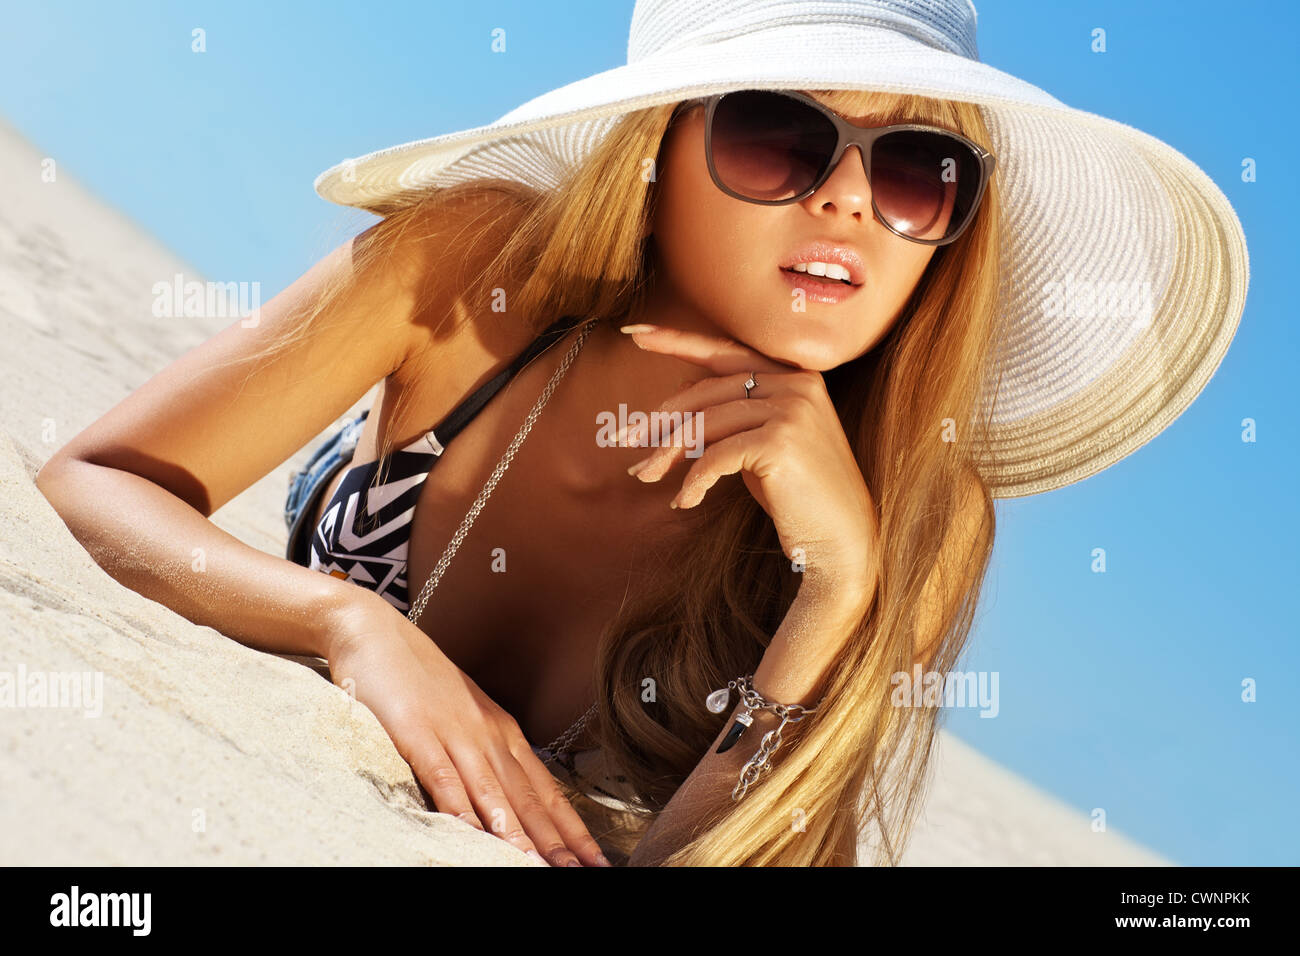 Young slim woman on beach portrait. - Stock Image